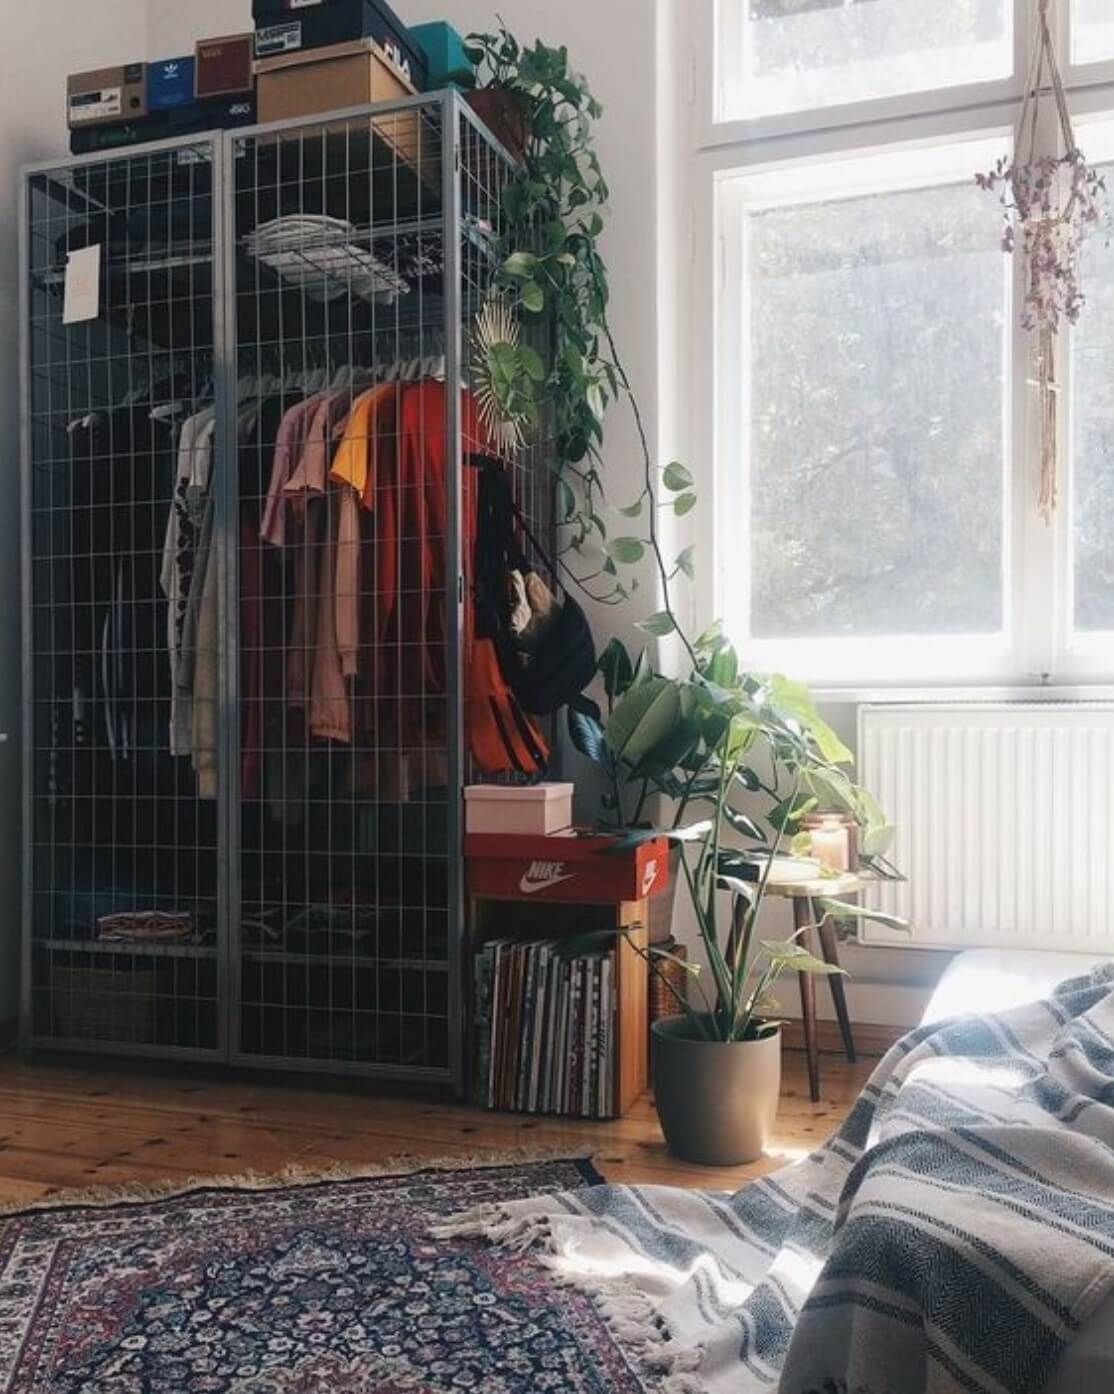 13 Creative Ways To Create a Wardrobe With Low Budget #roominspo